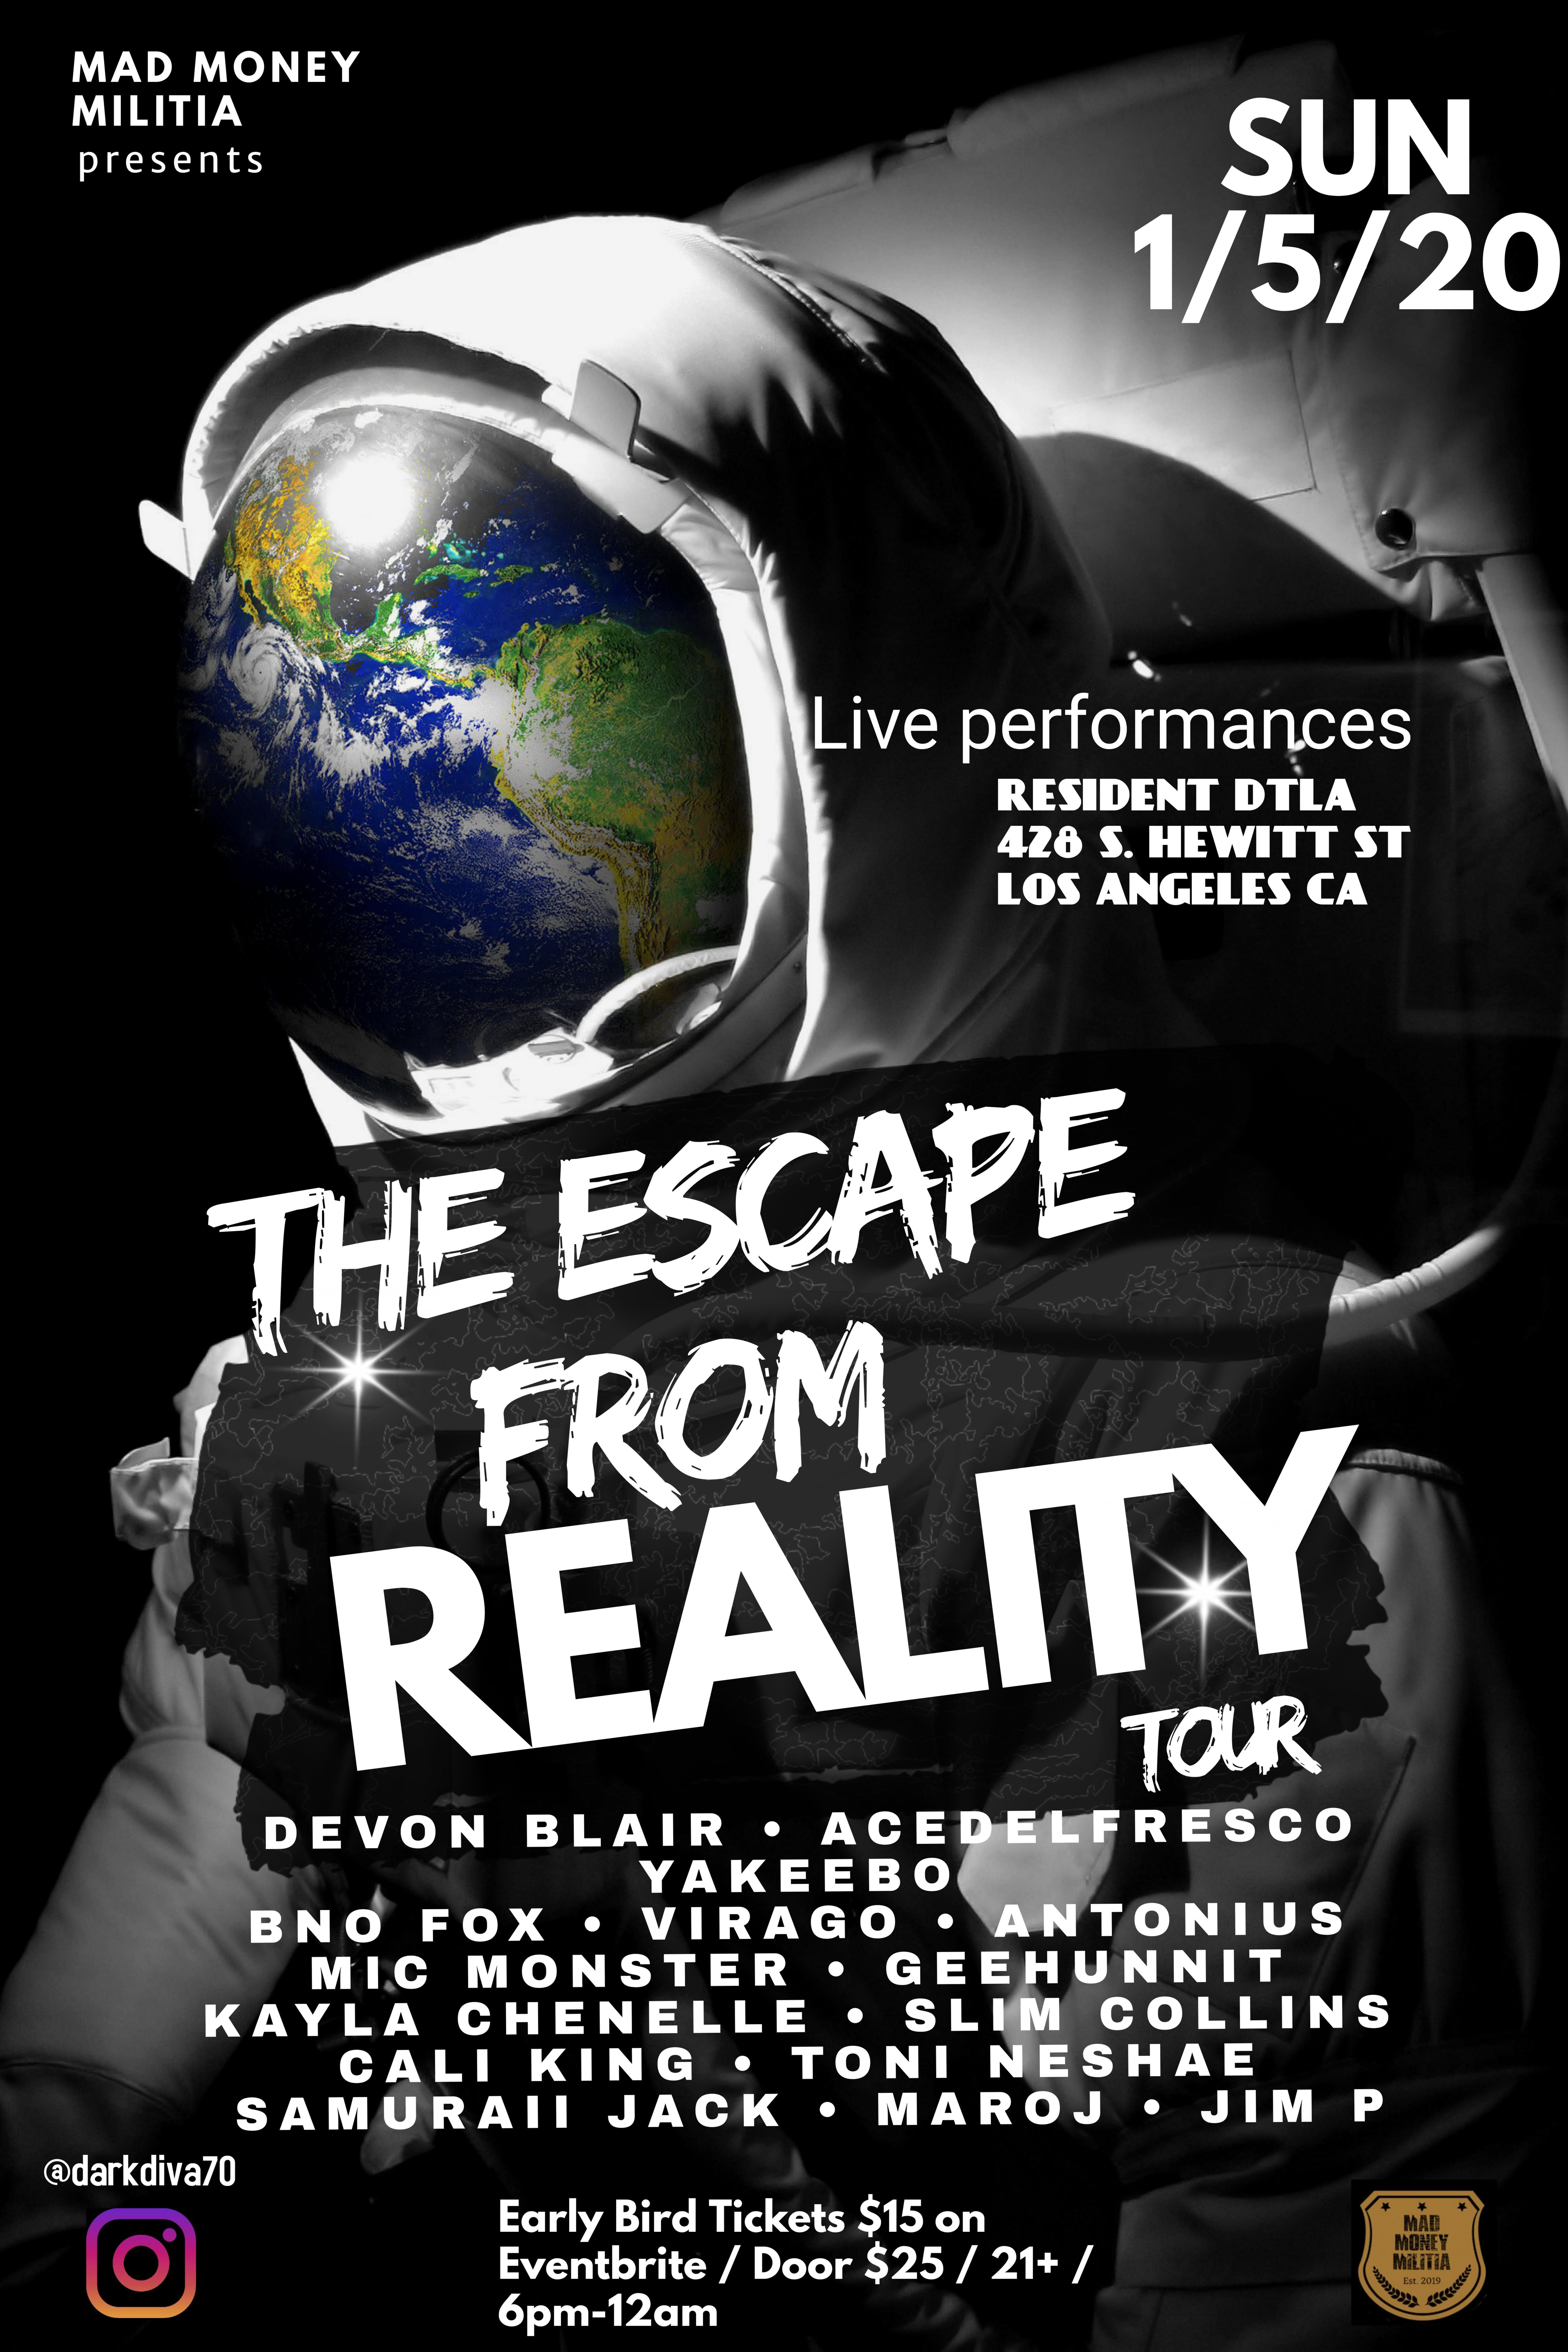 The Escape From Reality Tour Powered by Mad Money Militia